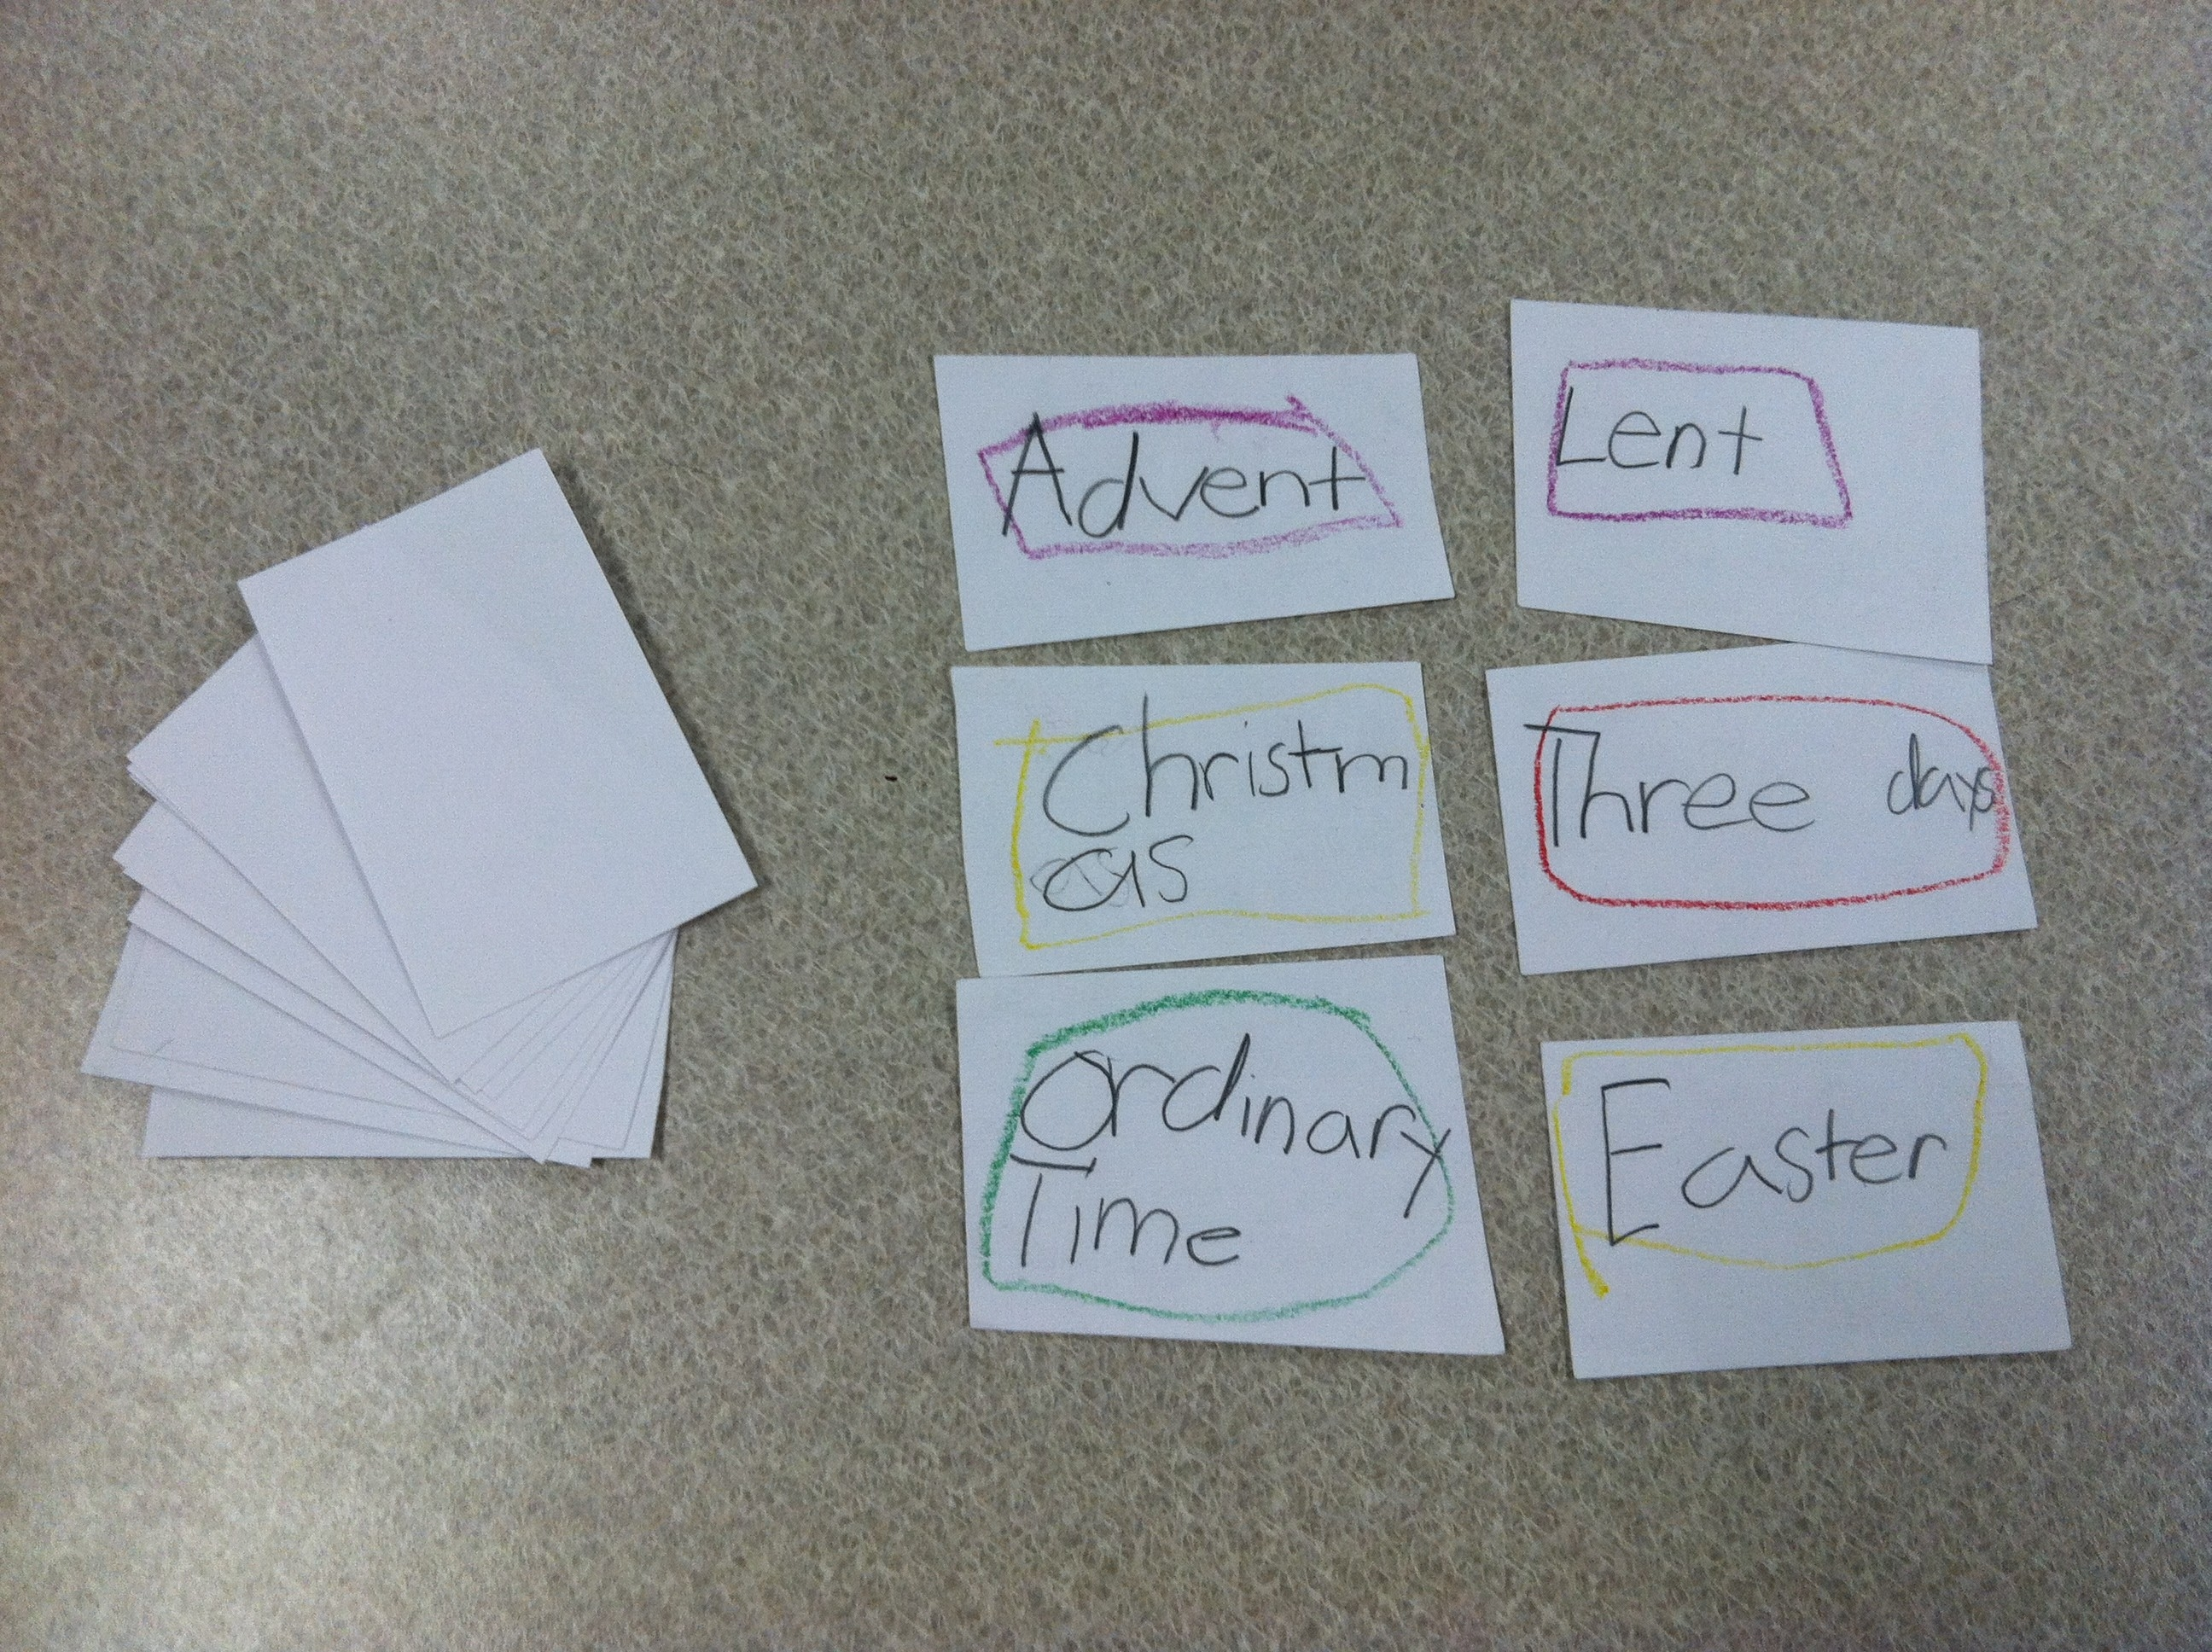 Liturgical Year Lesson Plan And Flashcard Activity | The  Liturgical Calendar Lesson Catholic